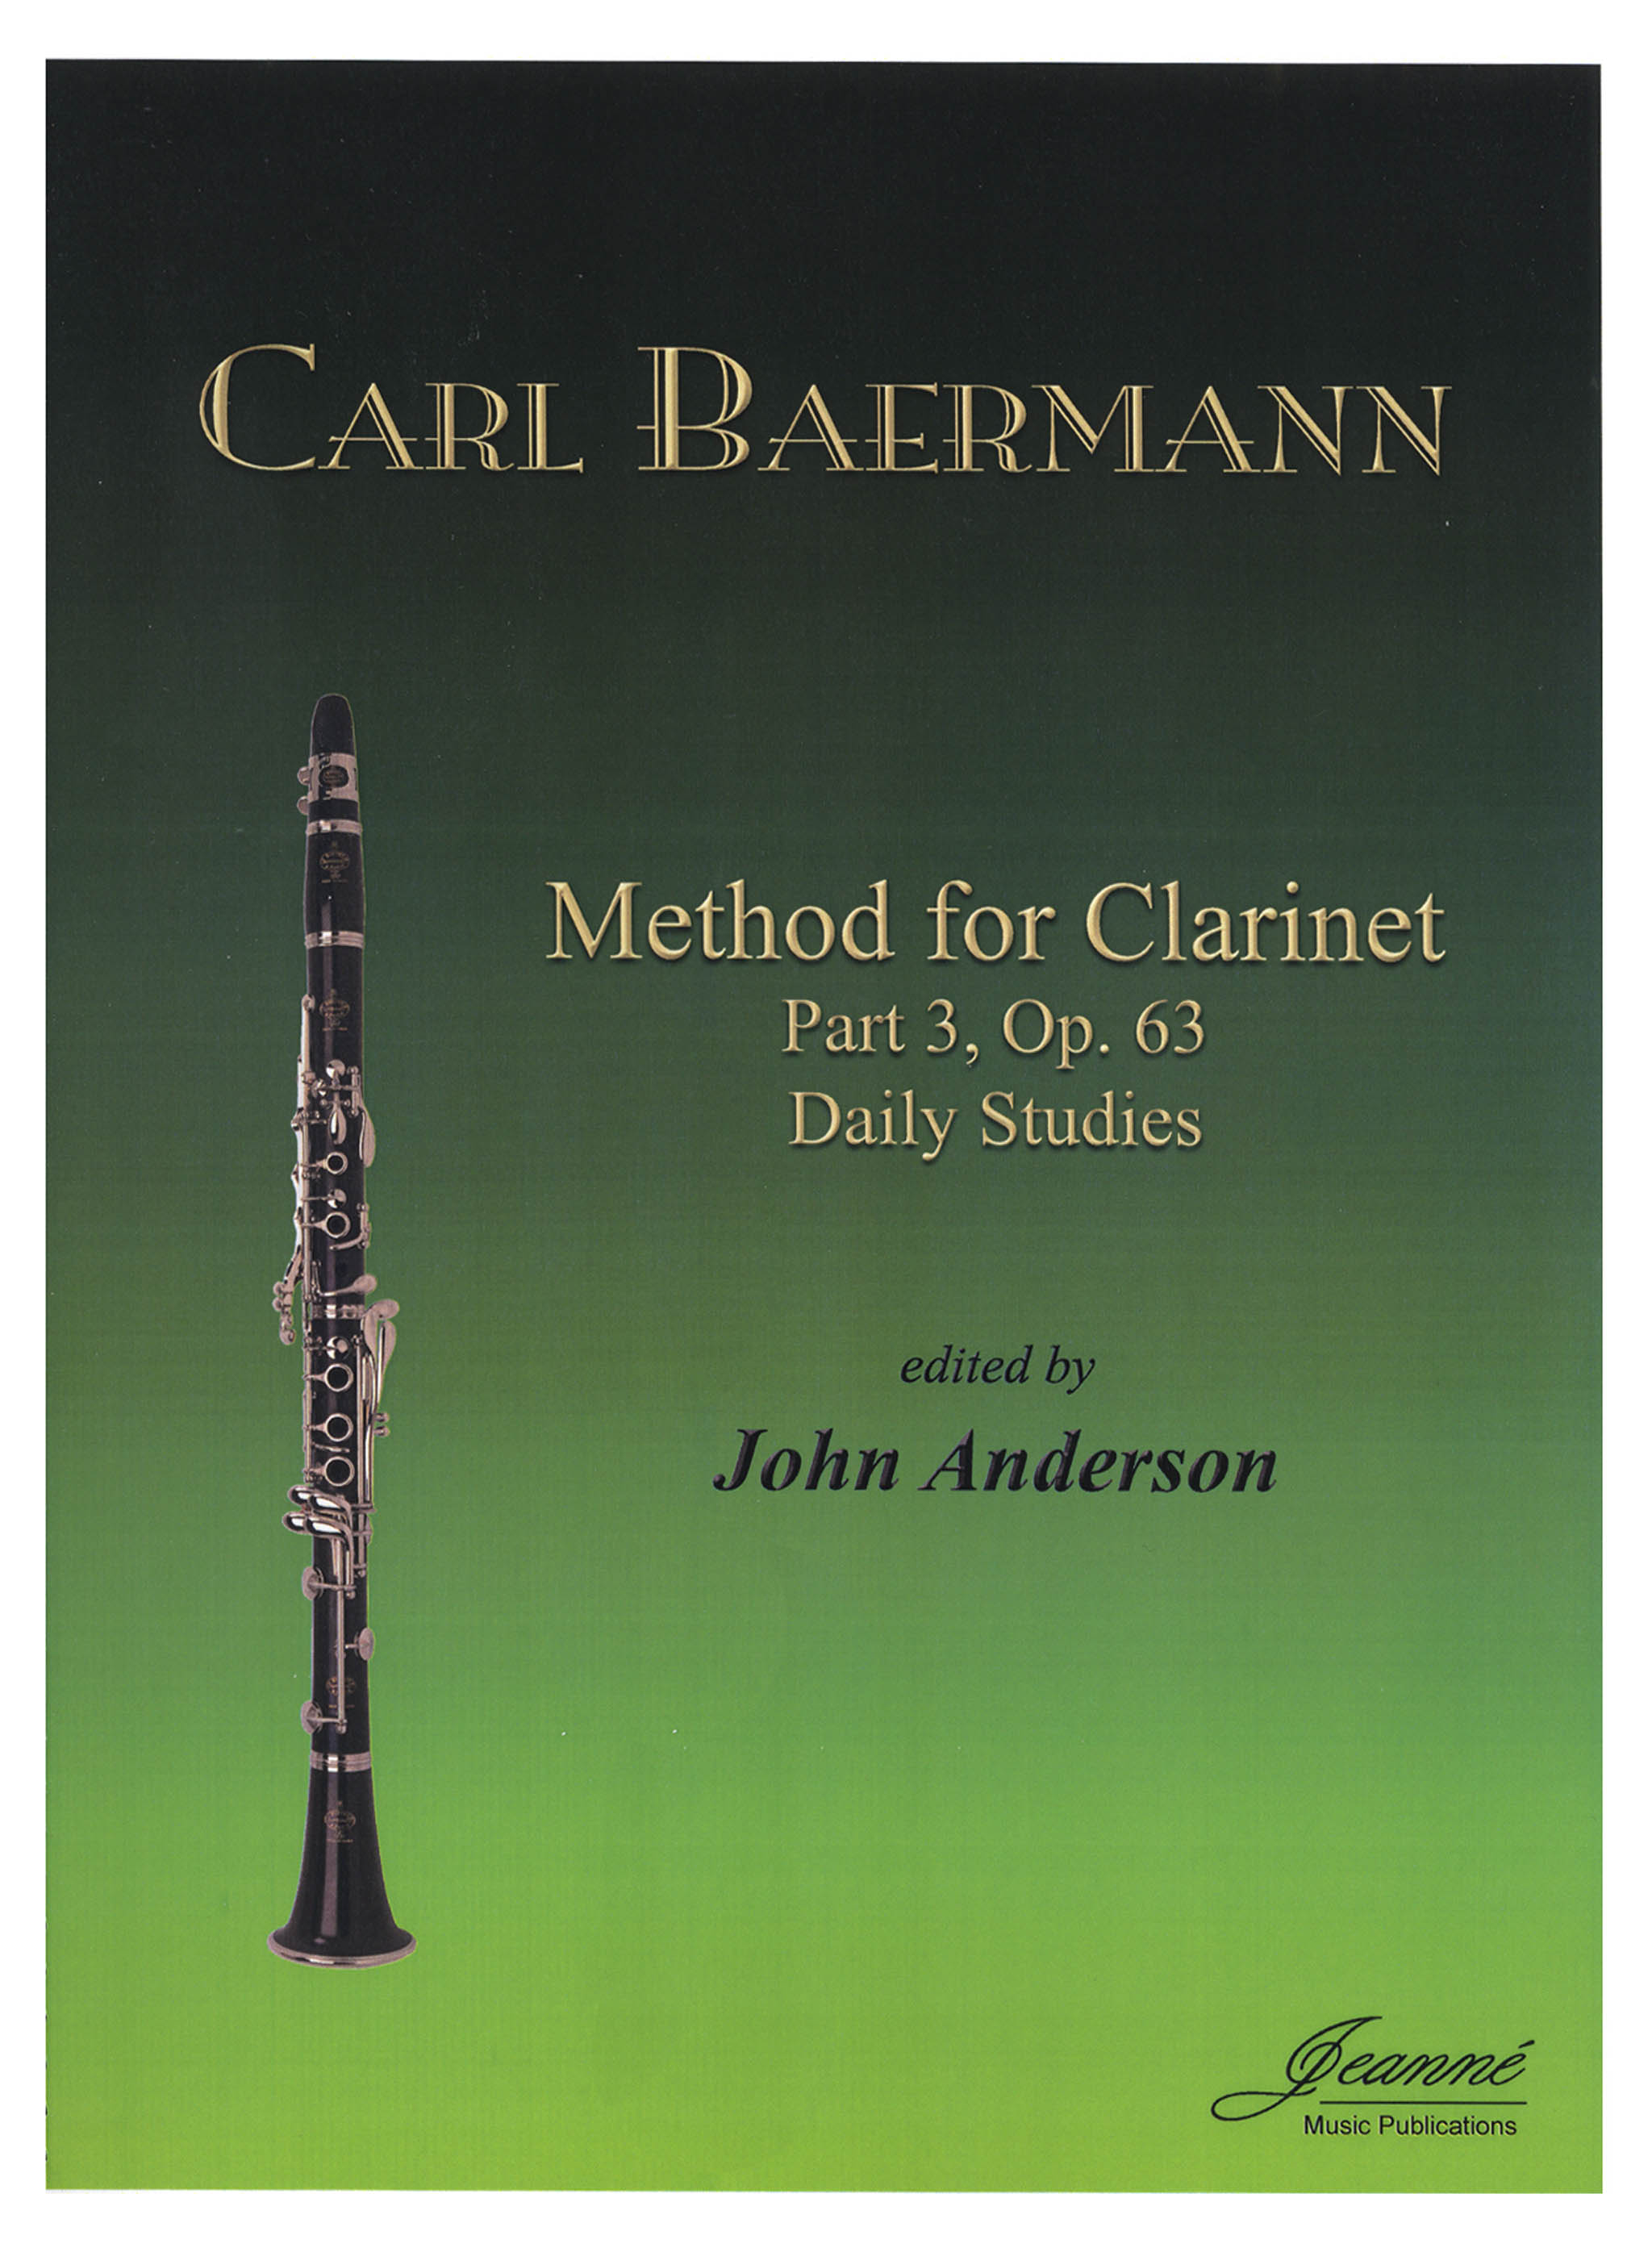 Baermann Clarinet Method, Op. 63, Div. III Cover